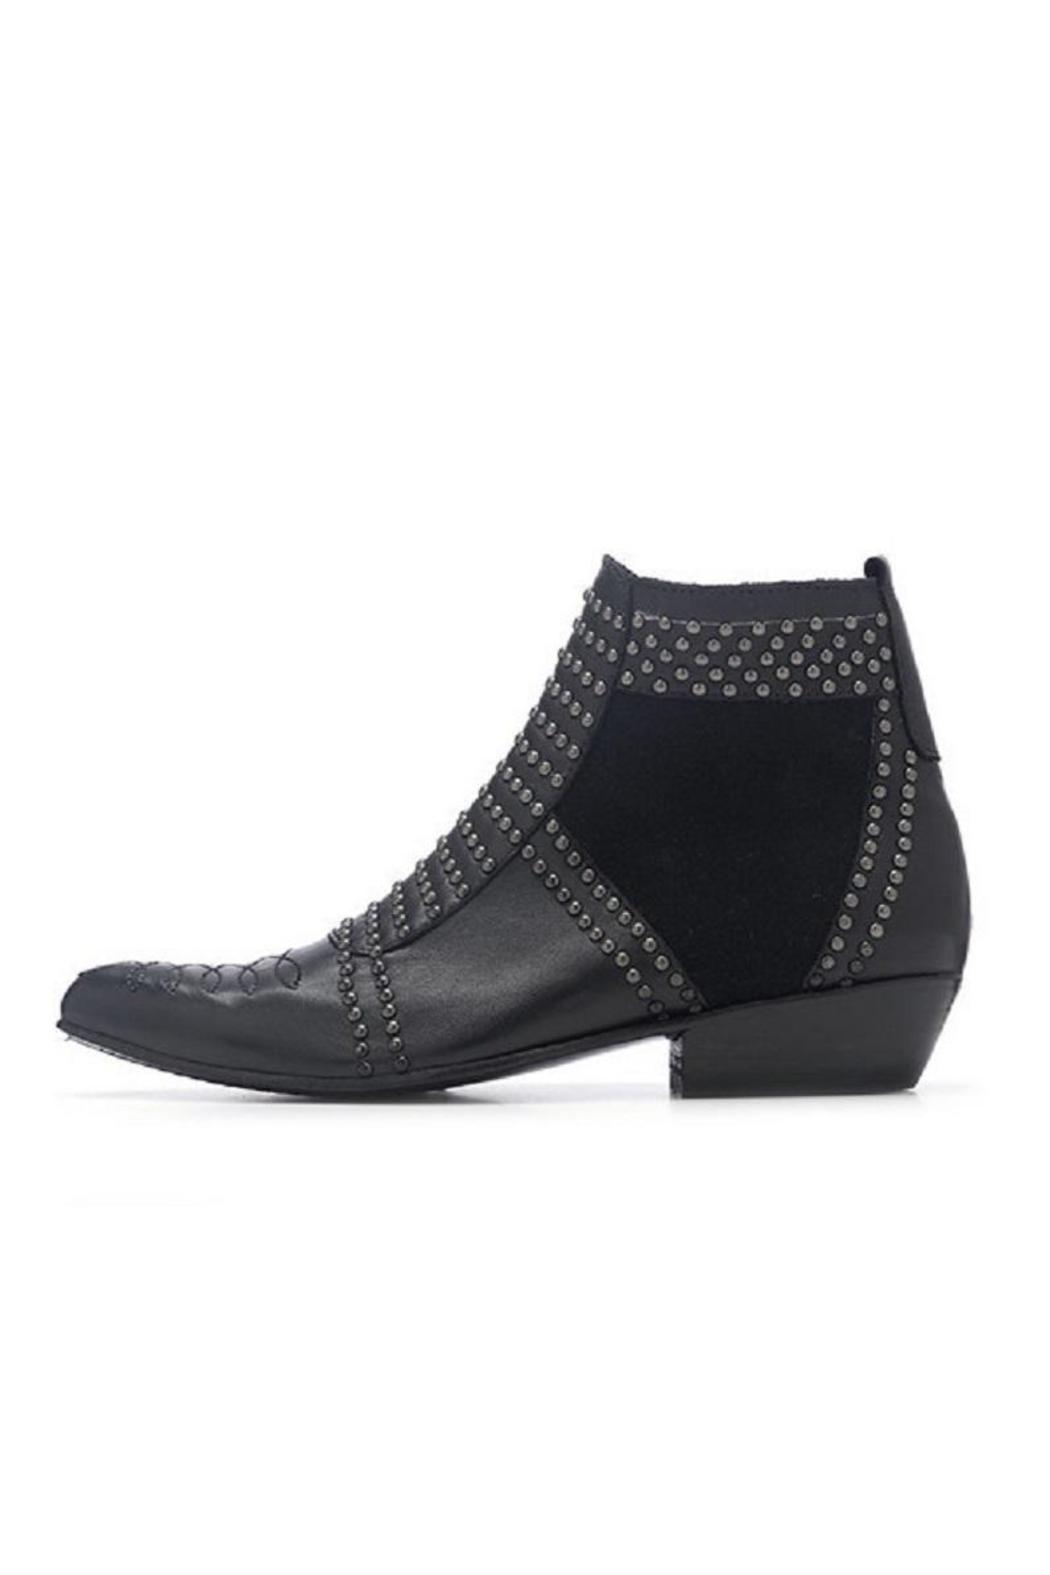 a144da22d8 Anine Bing Black-Studded Ankle Boot from Canada by Era Style Loft ...